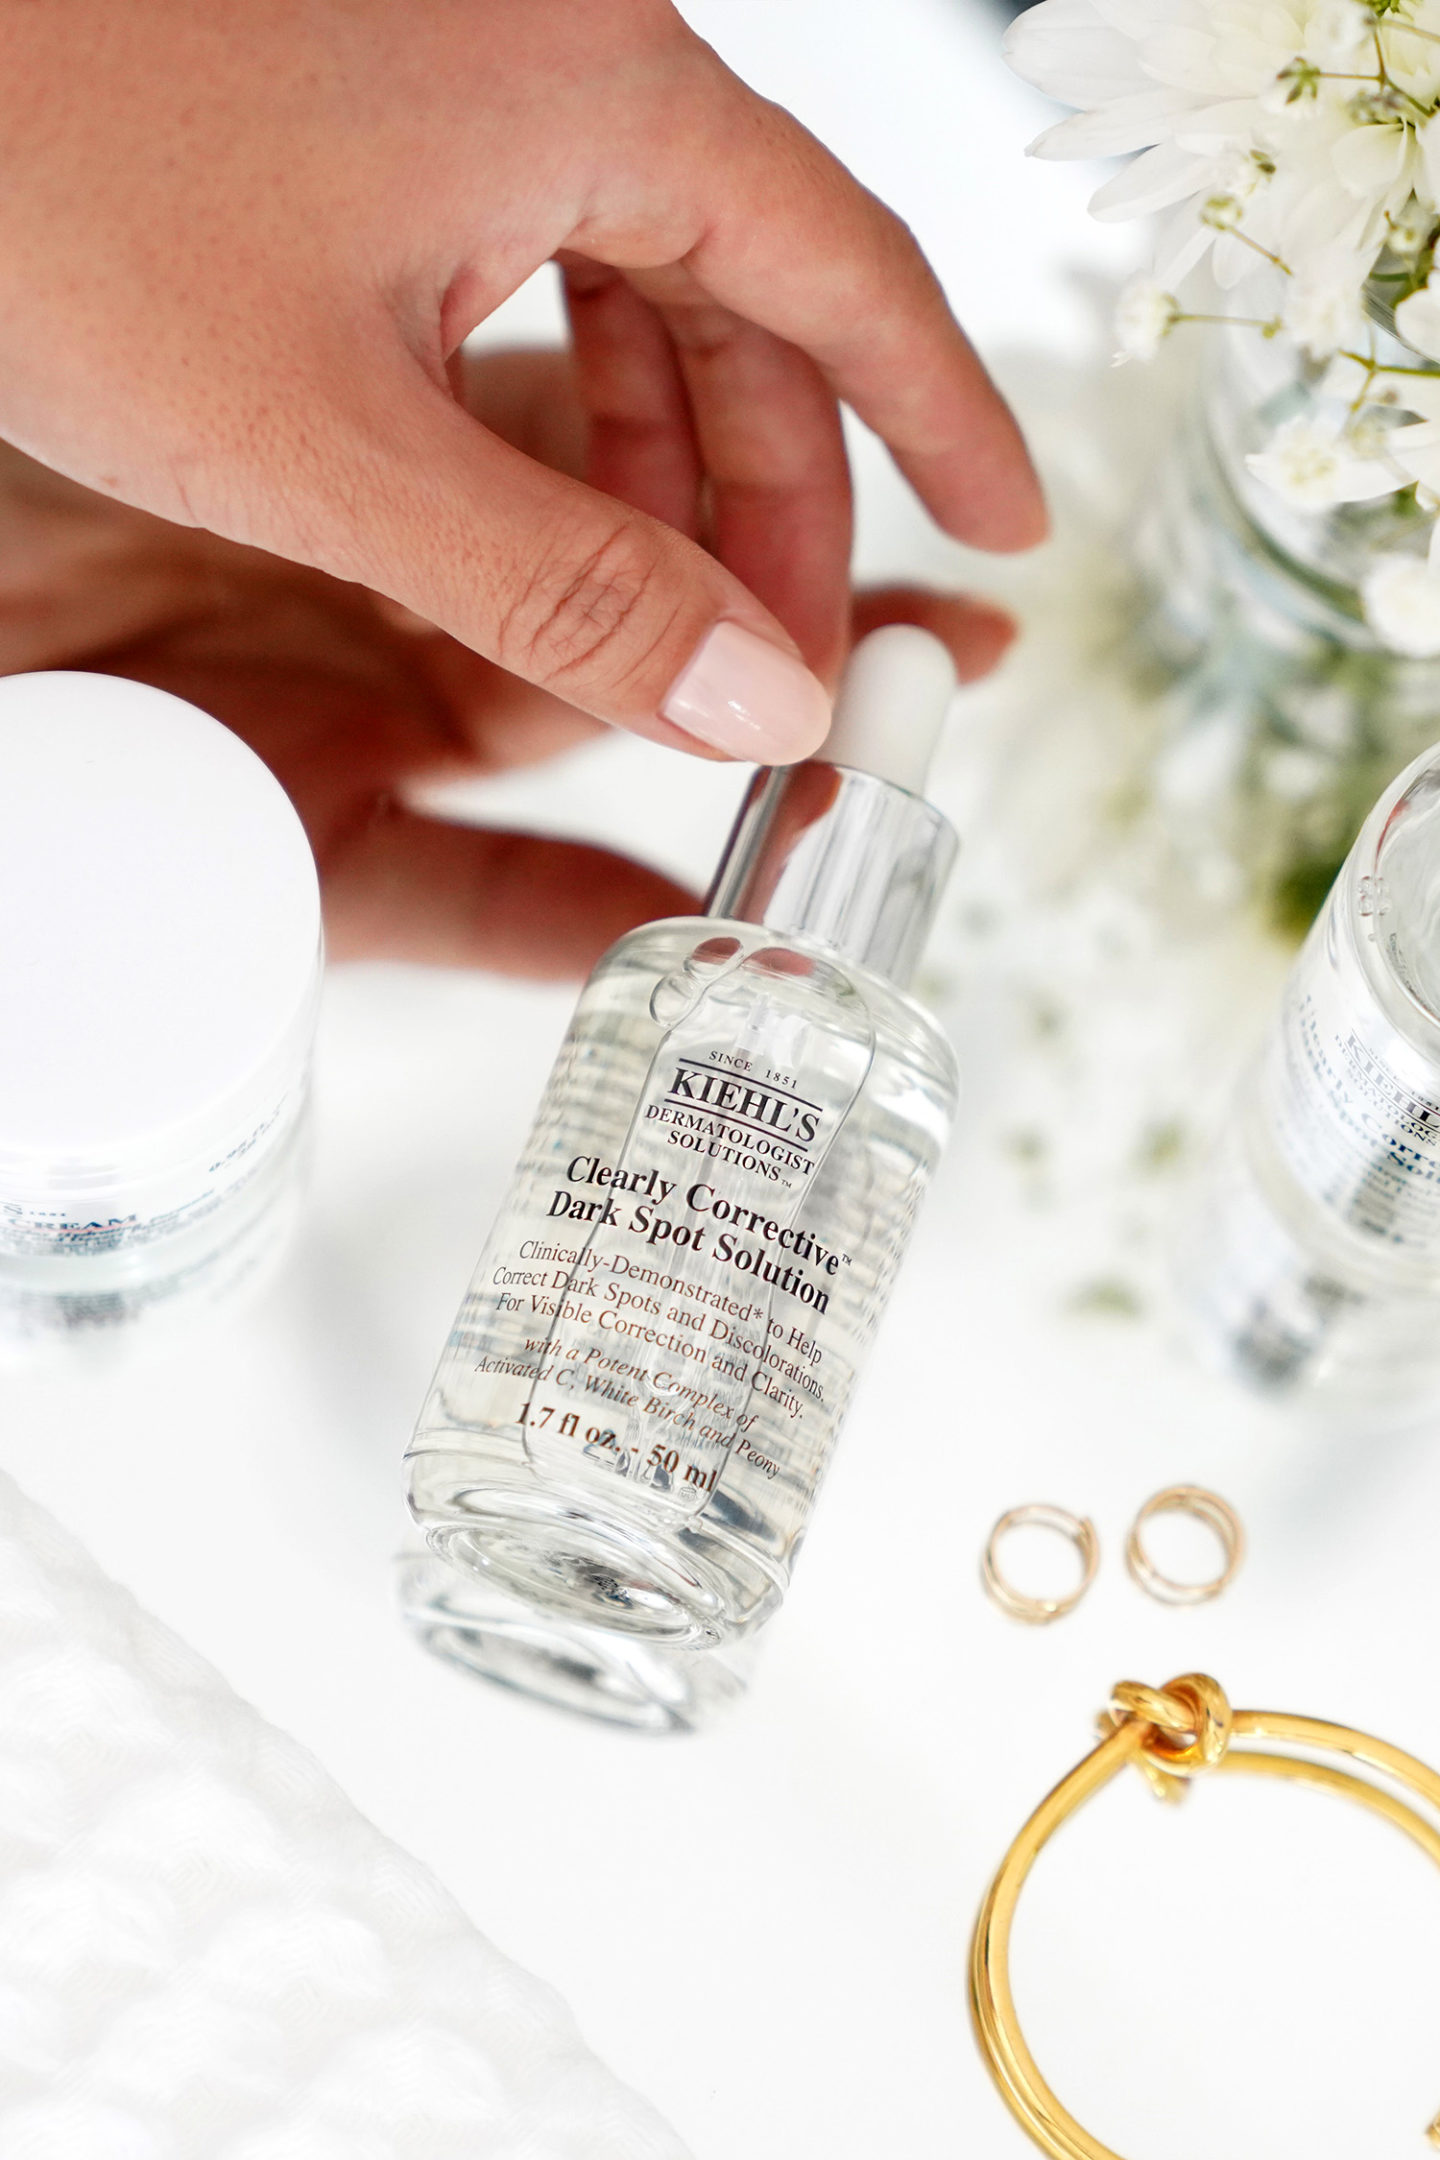 Kiehl's Clearly Corrective Dark Spot Corrector Review